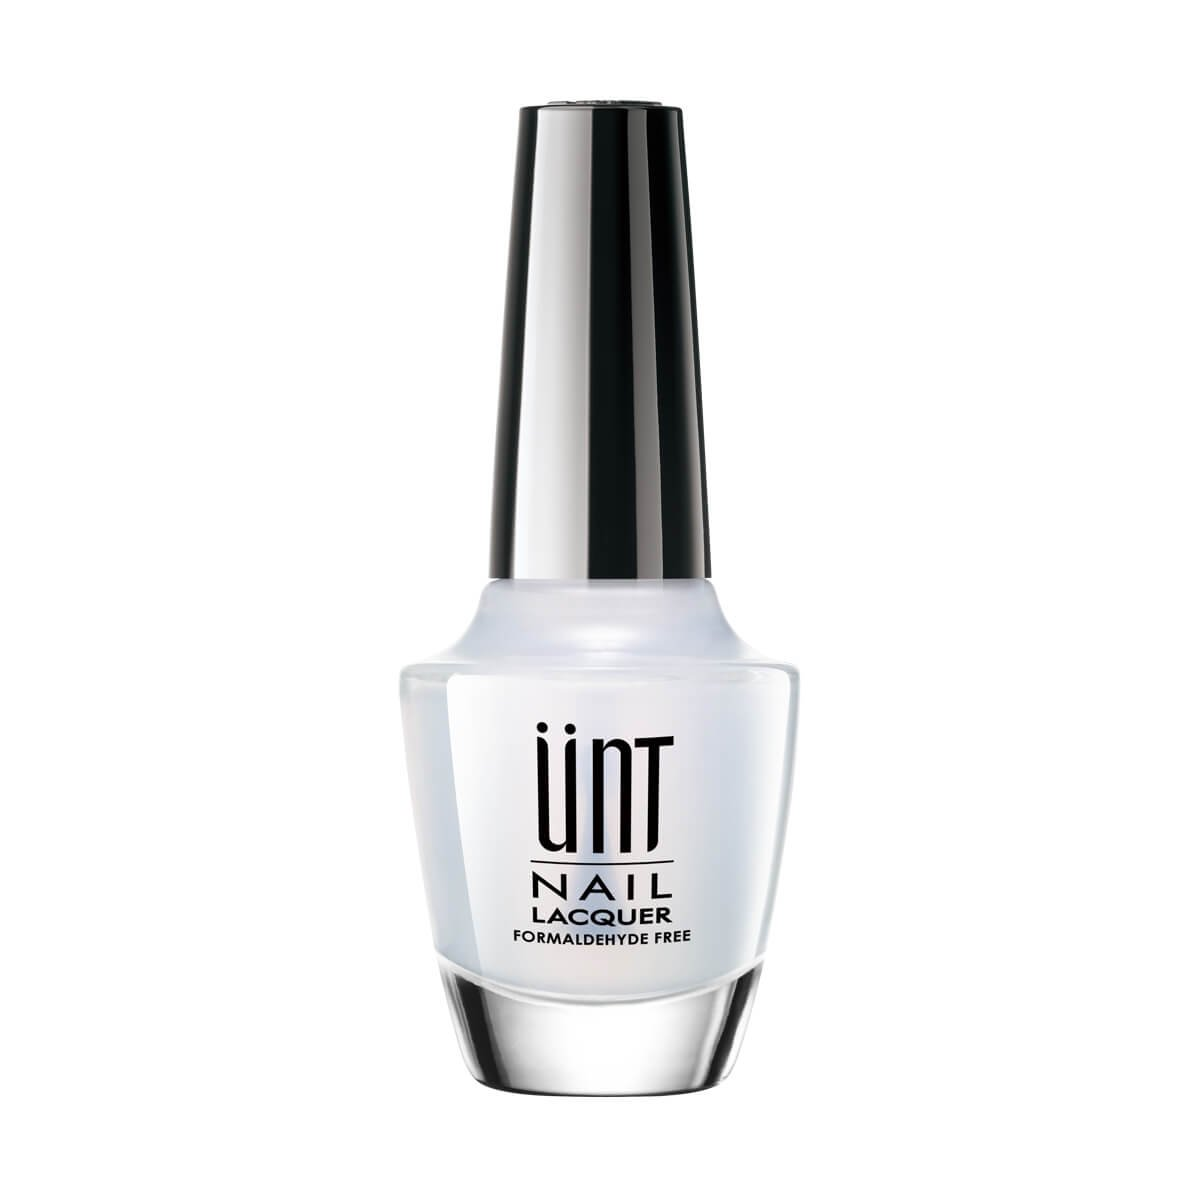 UNT Ready For Takeoff Peelable Base Coat, No Latex Cuticle Barrier, Non-glue Based Nail Tape, 0.5 Ounce, Top Ranking from Blogger's Testing